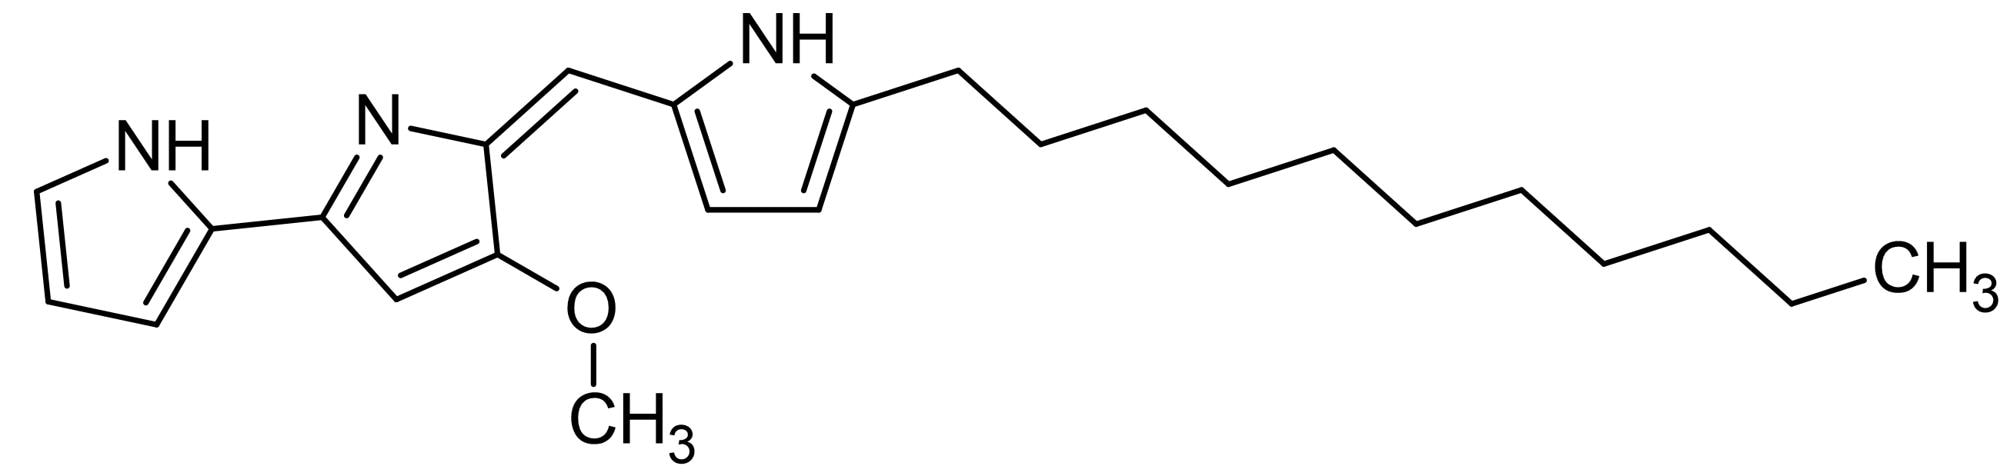 Chemical Structure - Undecylprodigiosin, Apoptotic and anticancer agent (ab144382)